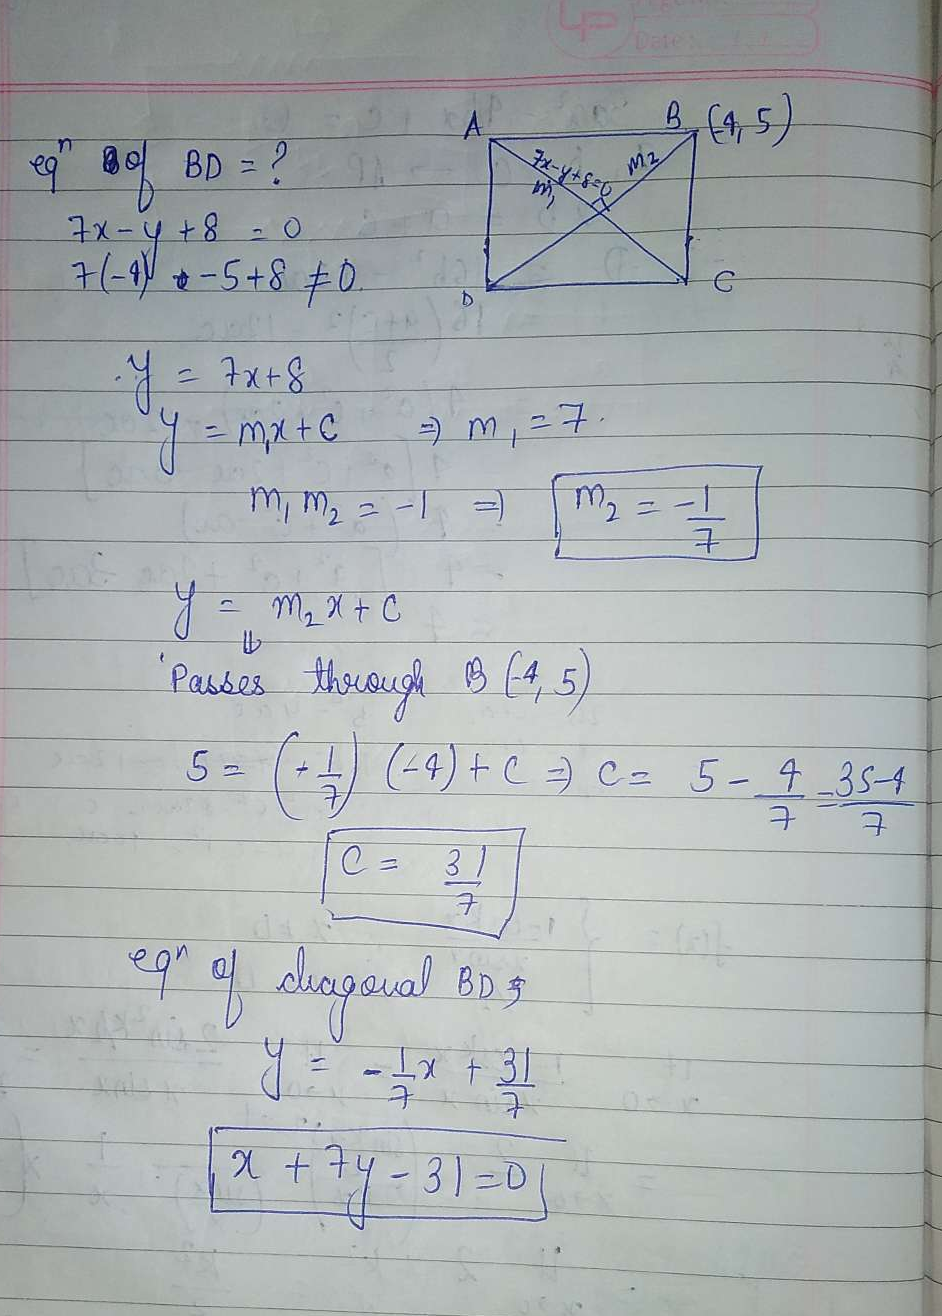 If (-4,5) is one vertex and 7x-y+8=0 is one diagonal of a square, then the equation of the other diagonal is